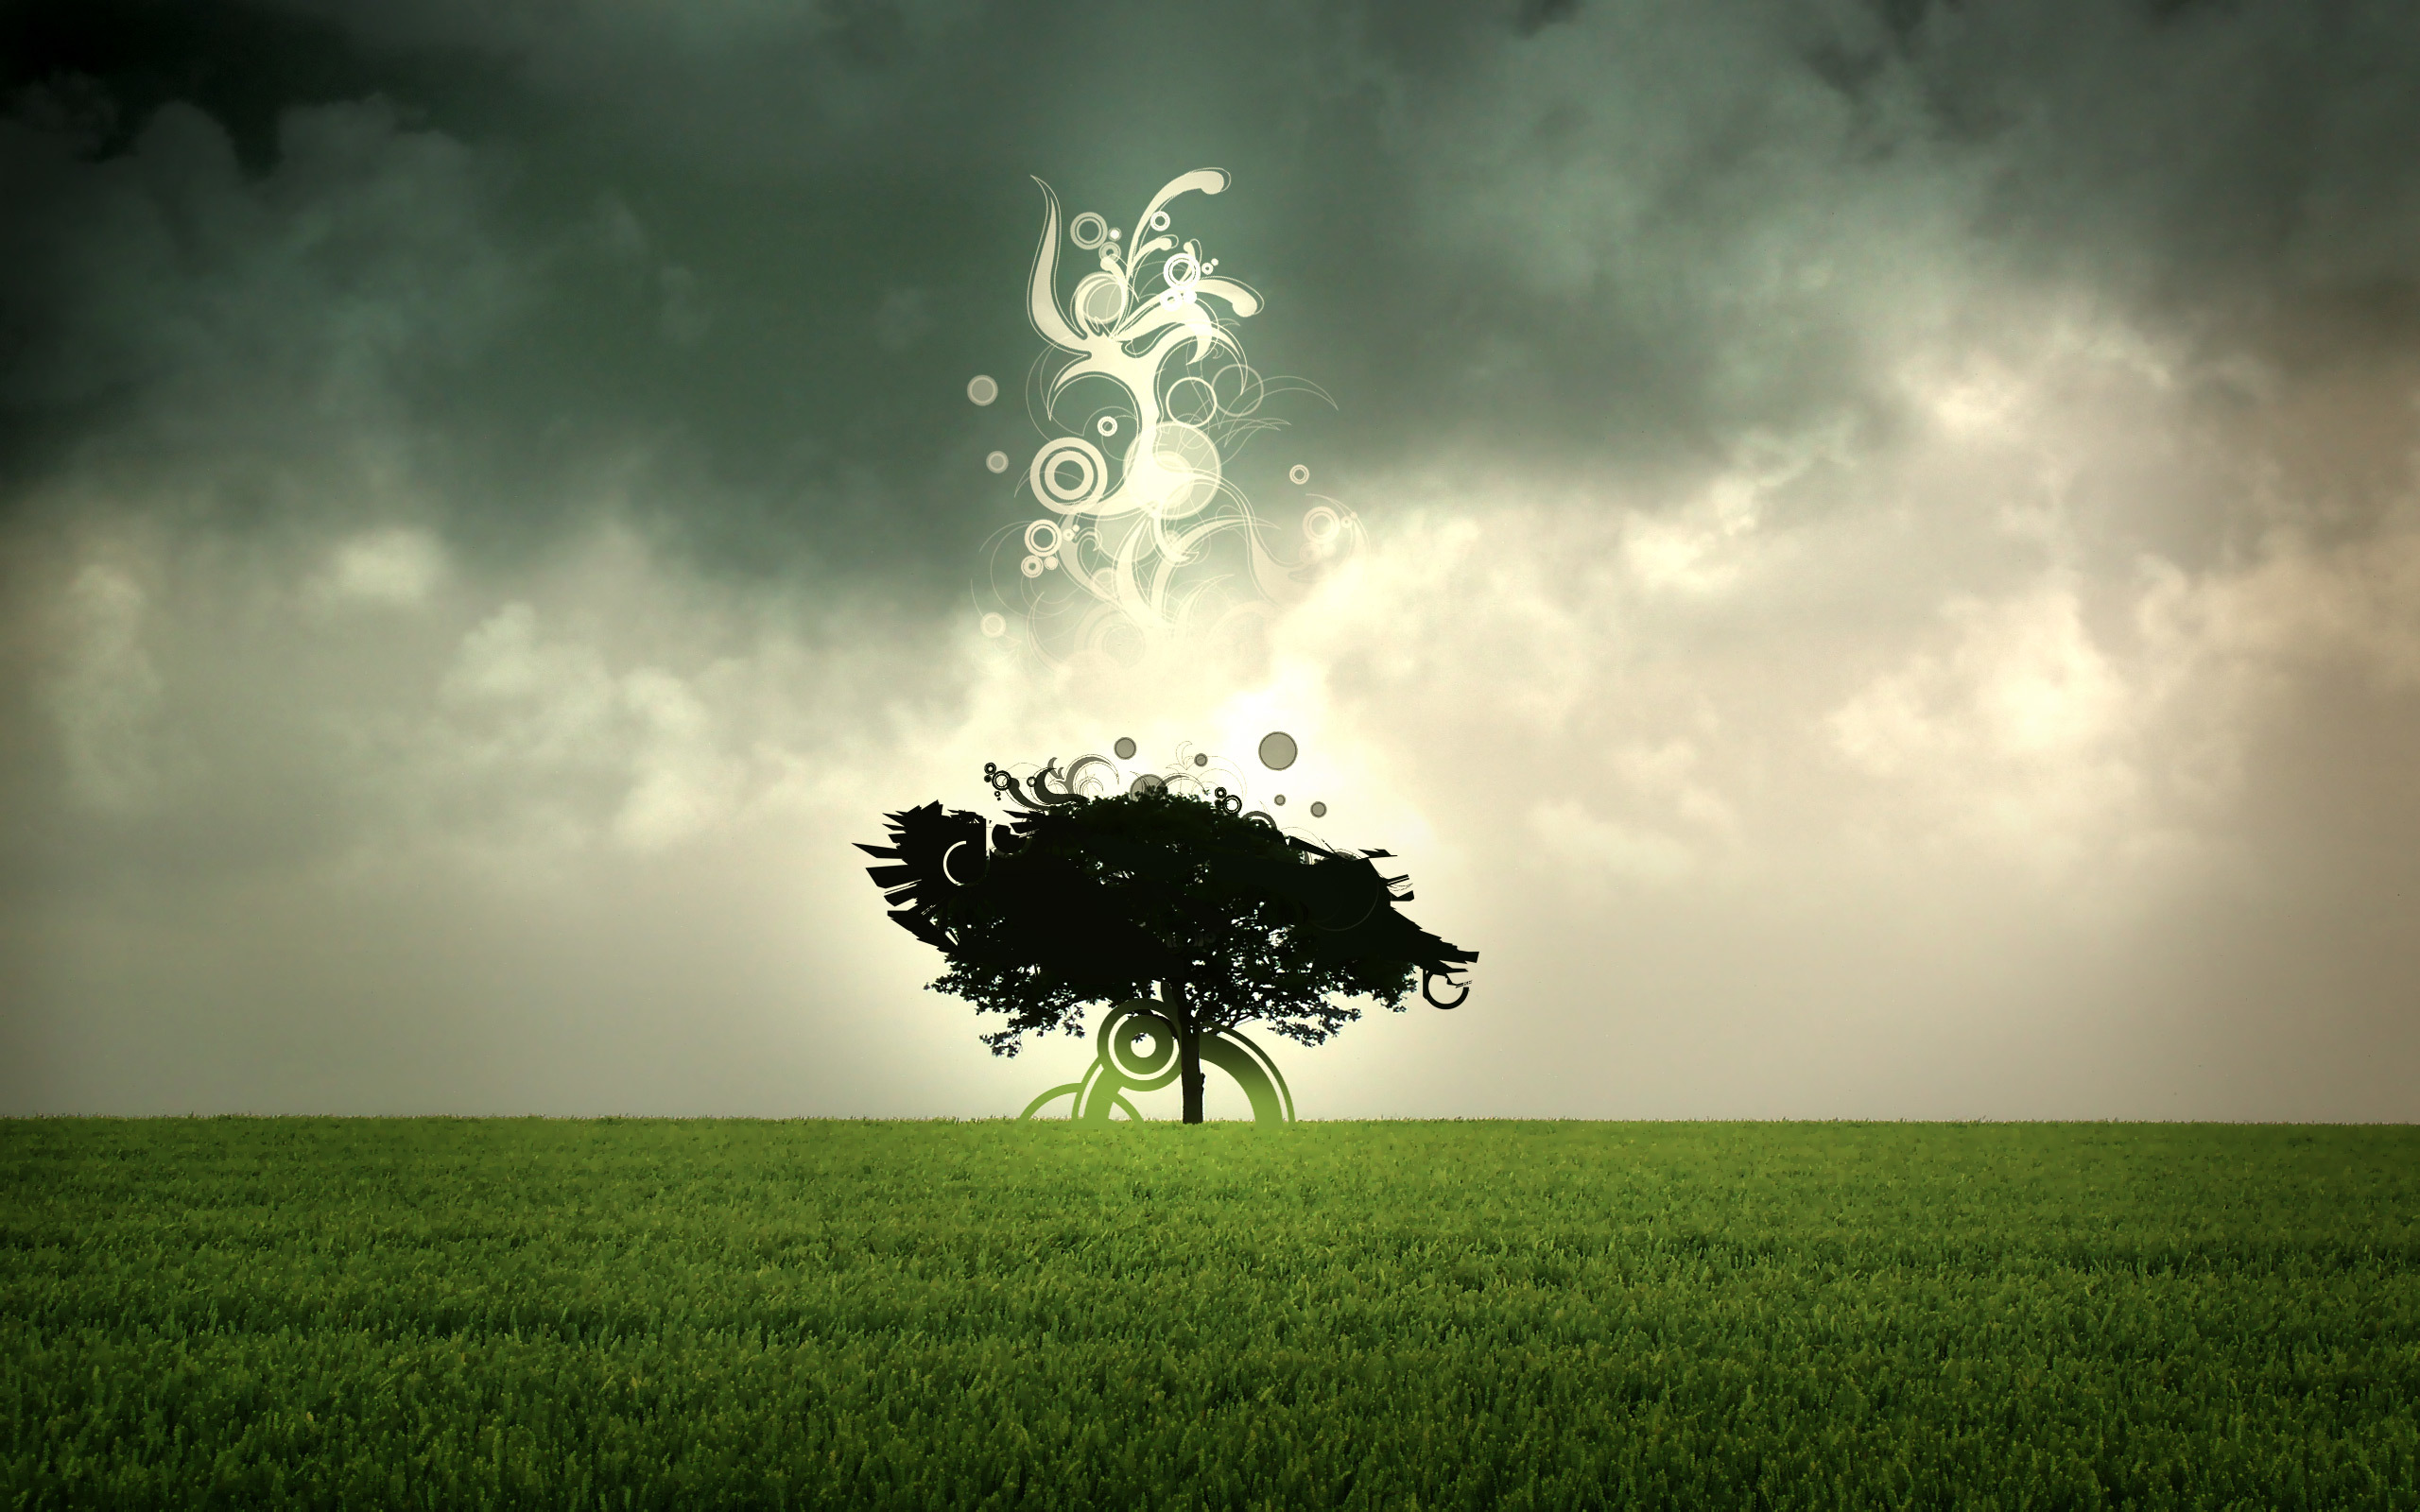 http://onlyhdwallpapers.com/wallpaper/abstract_trees_grass_sacred_greenlife_tree_desktop_2560x1600_wallpaper-174551.jpeg